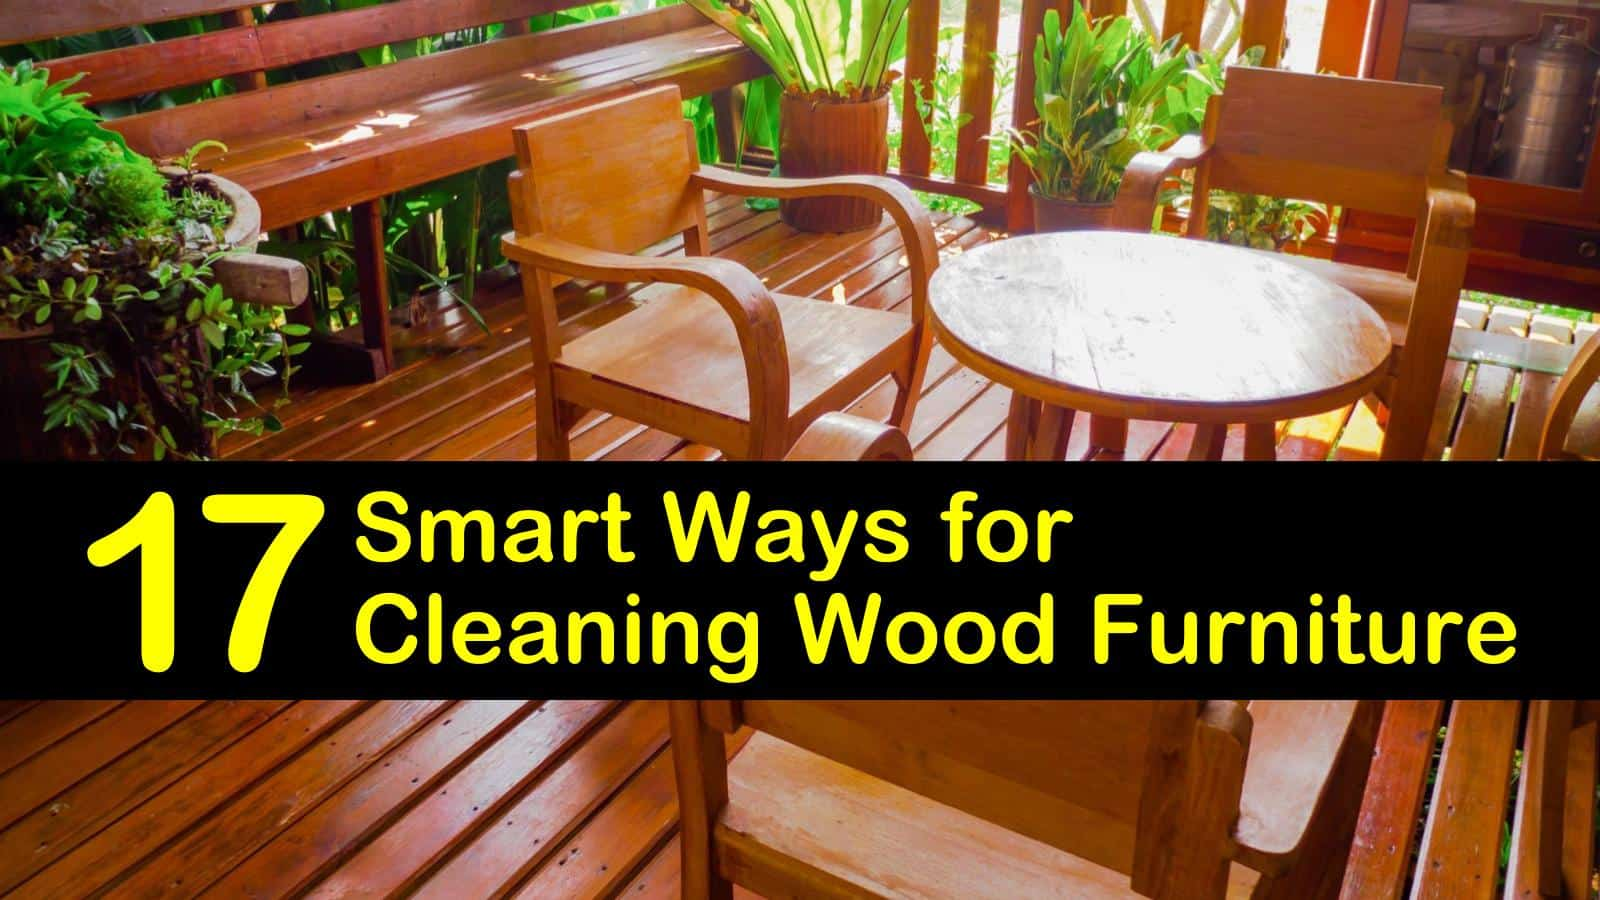 17 Smart Ways For Cleaning Wood Furniture